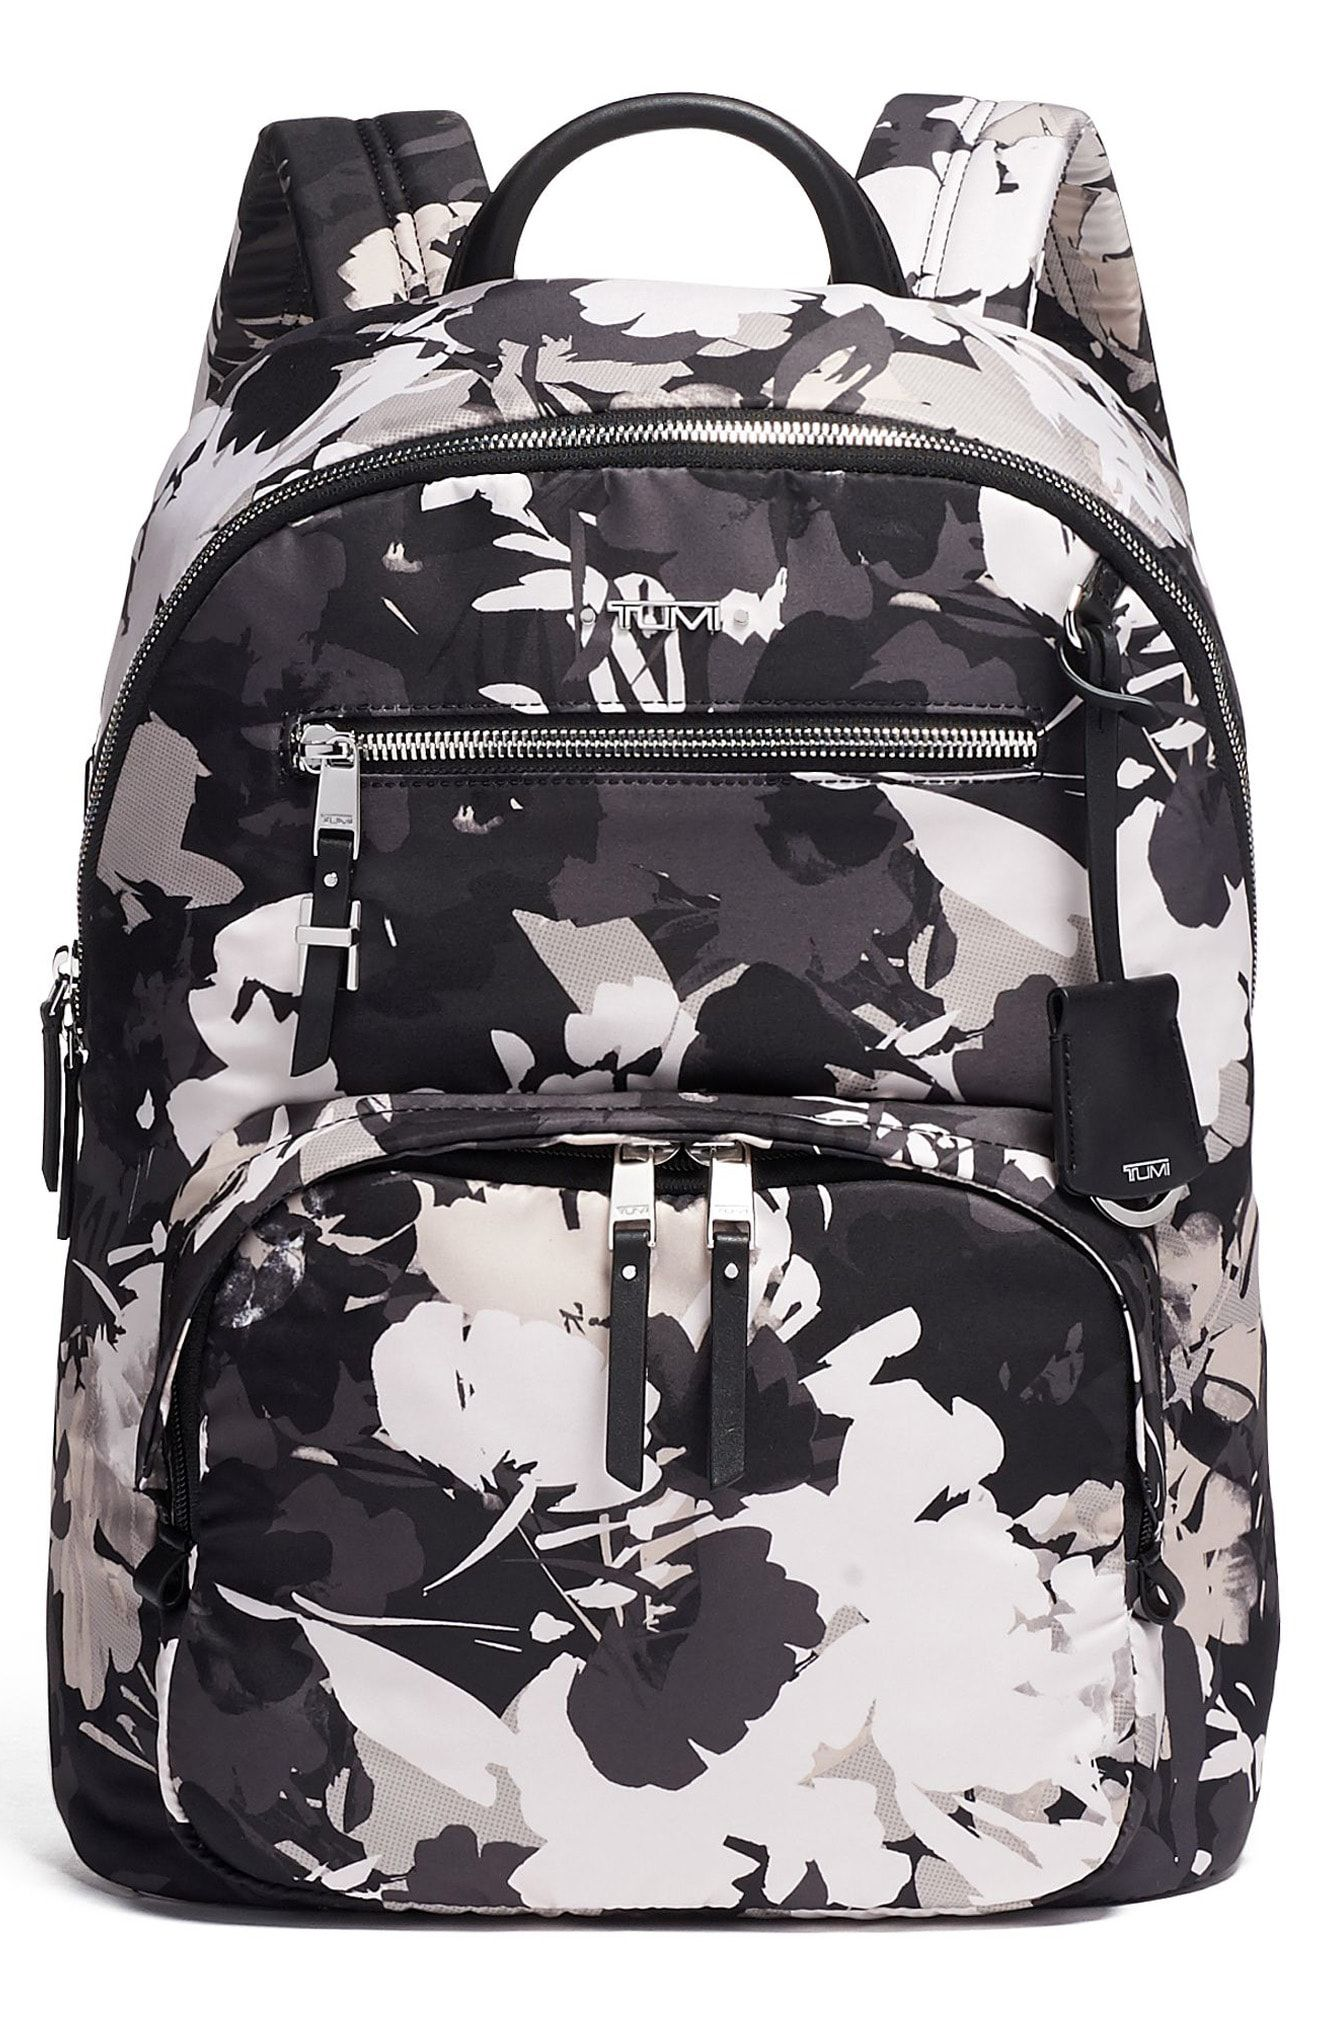 2c9addde537 Tumi Voyageur Hagen Nylon Backpack available at #Nordstrom | Wish ...